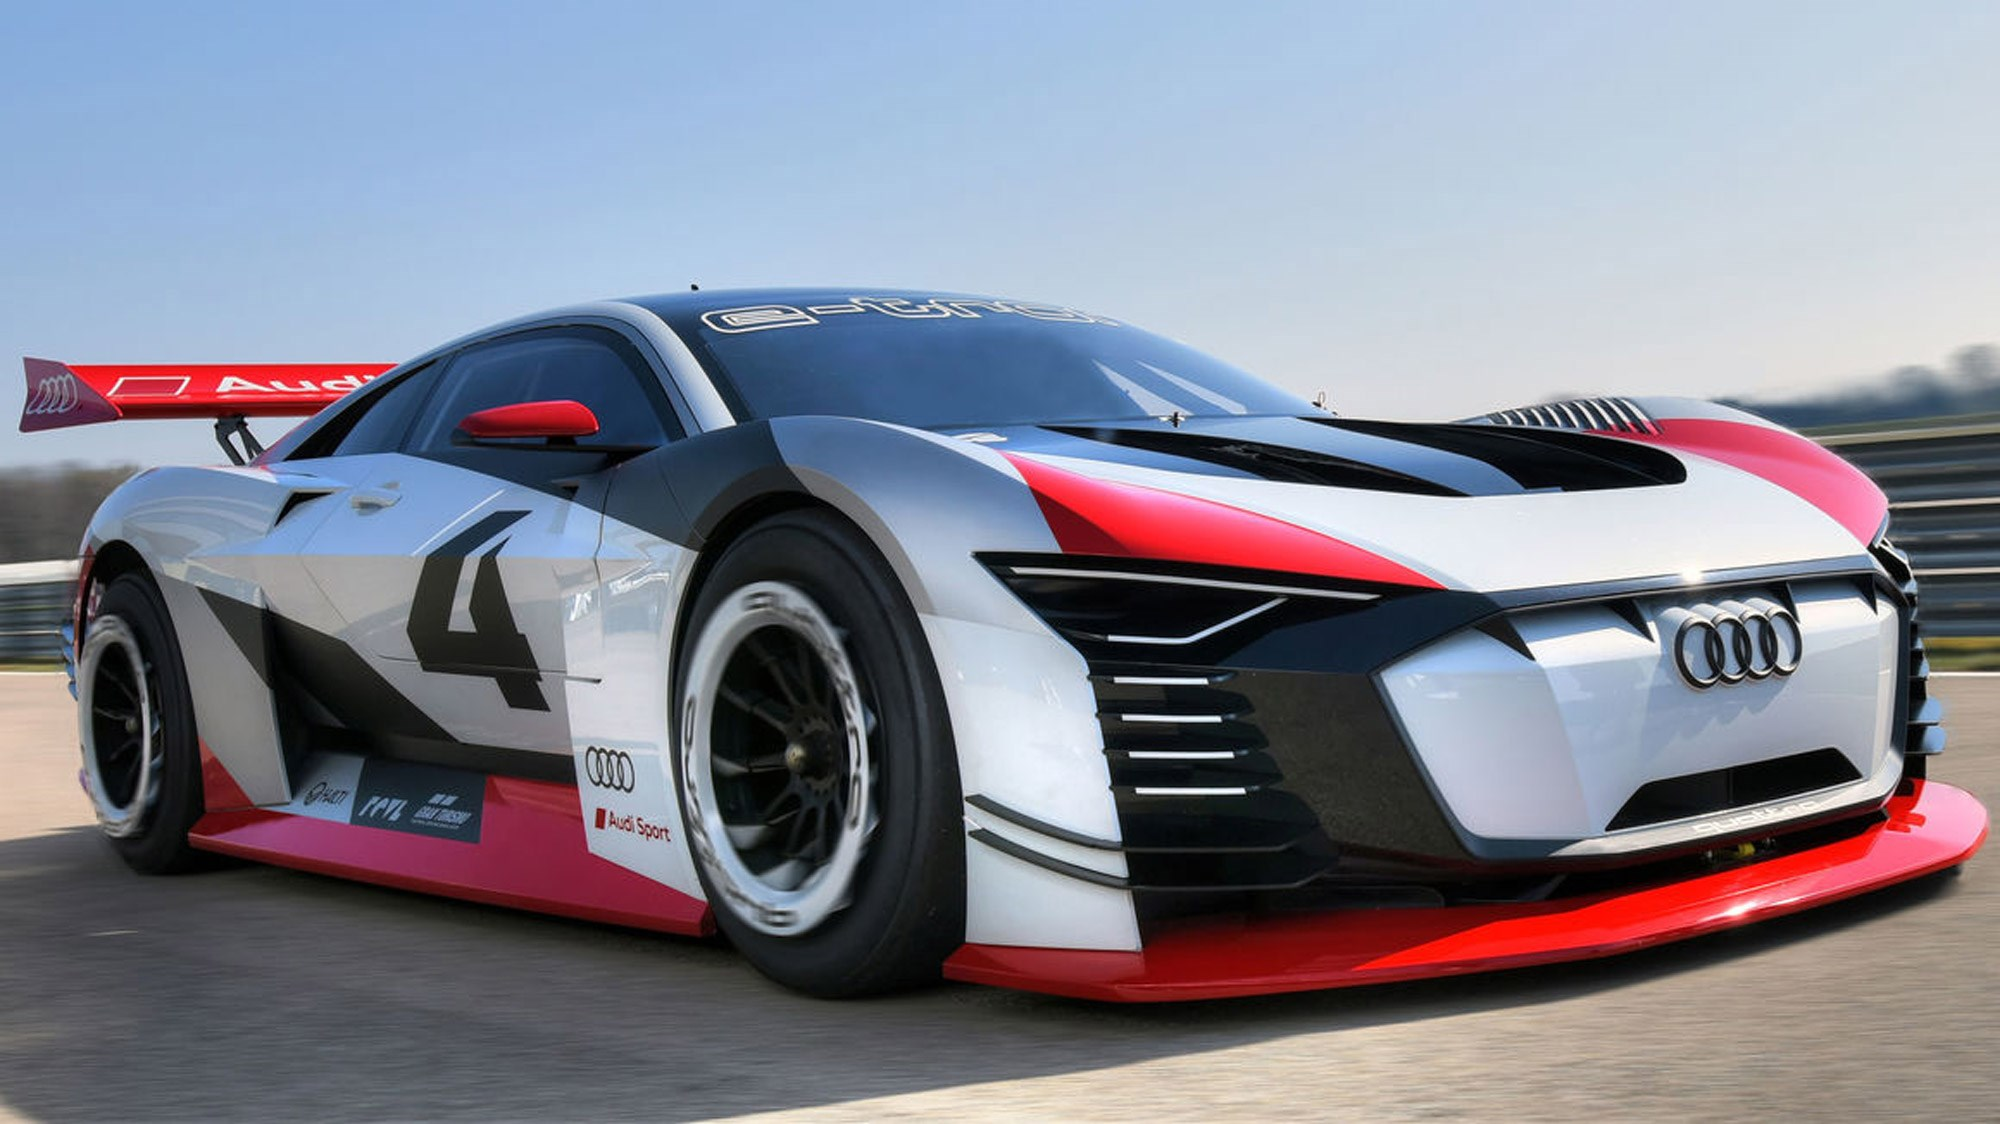 audi e tron vision gran turismo virtual concept to real life racing car car magazine. Black Bedroom Furniture Sets. Home Design Ideas